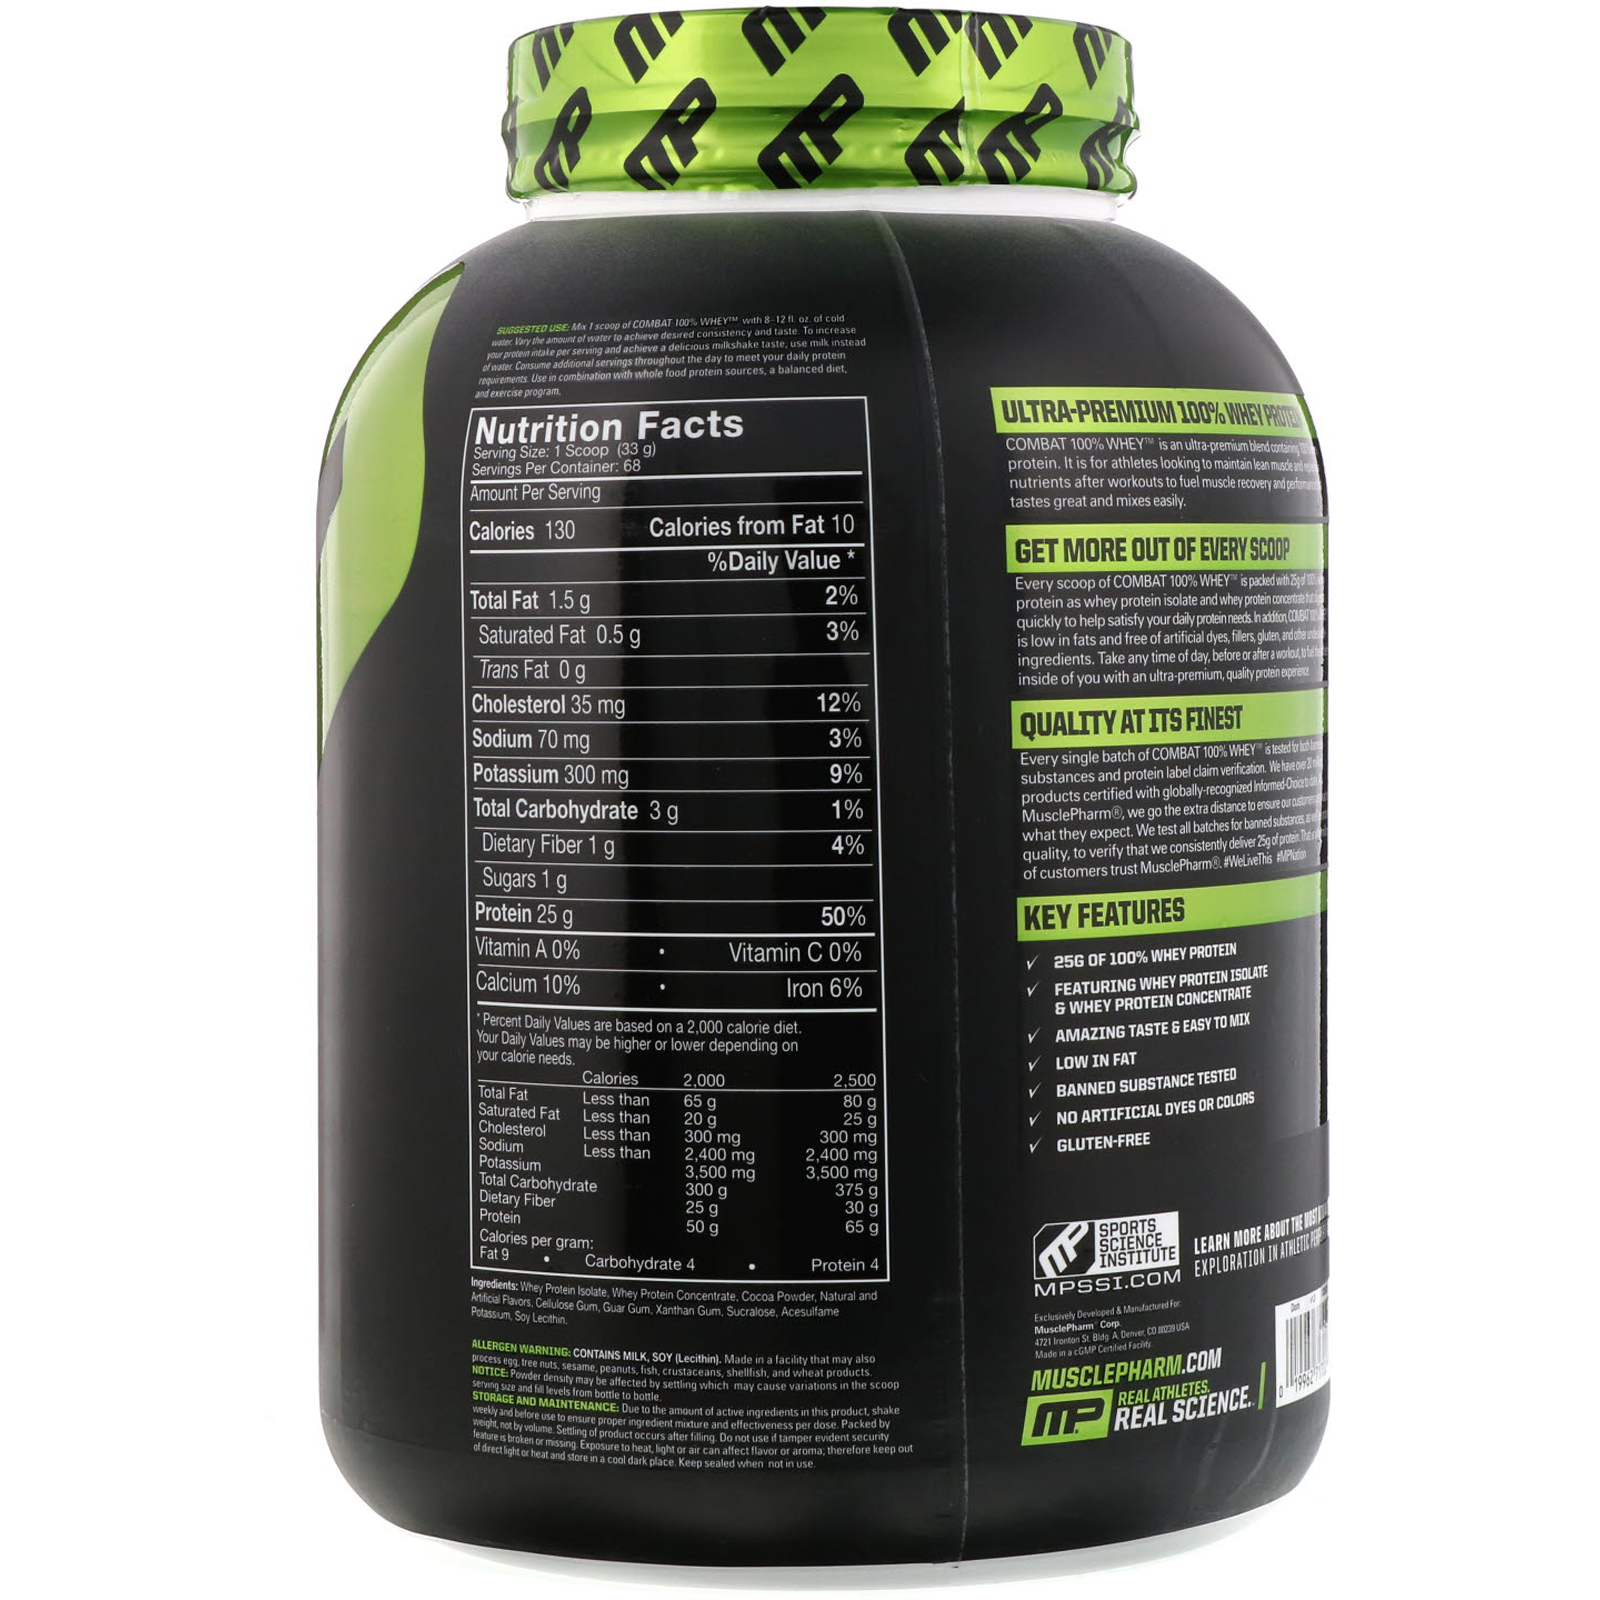 Combat Whey protein ingrediens سعر بروتين كومبات واي بروتين بروتين كومبات للتنشيف بروتين كومبات ماس Muscle pharm فوائد بروتين كومبات لزيادة الوزن